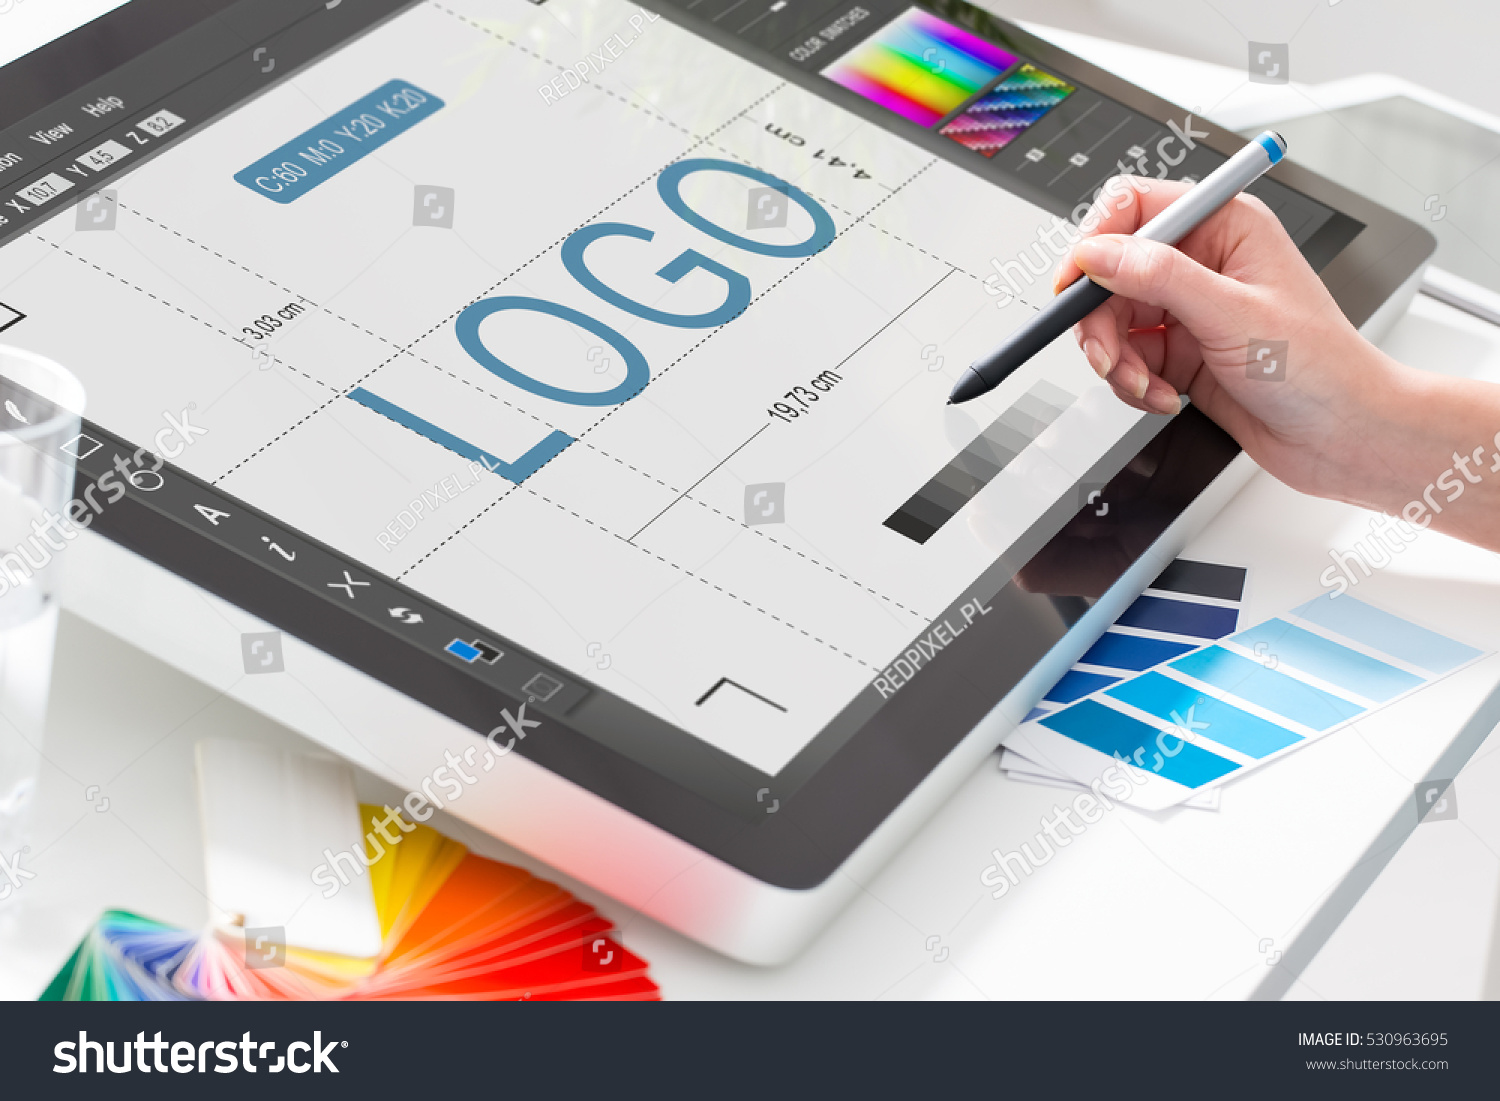 logo design brand designer sketch graphic drawing creative creativity draw studying work tablet concept - stock image #530963695